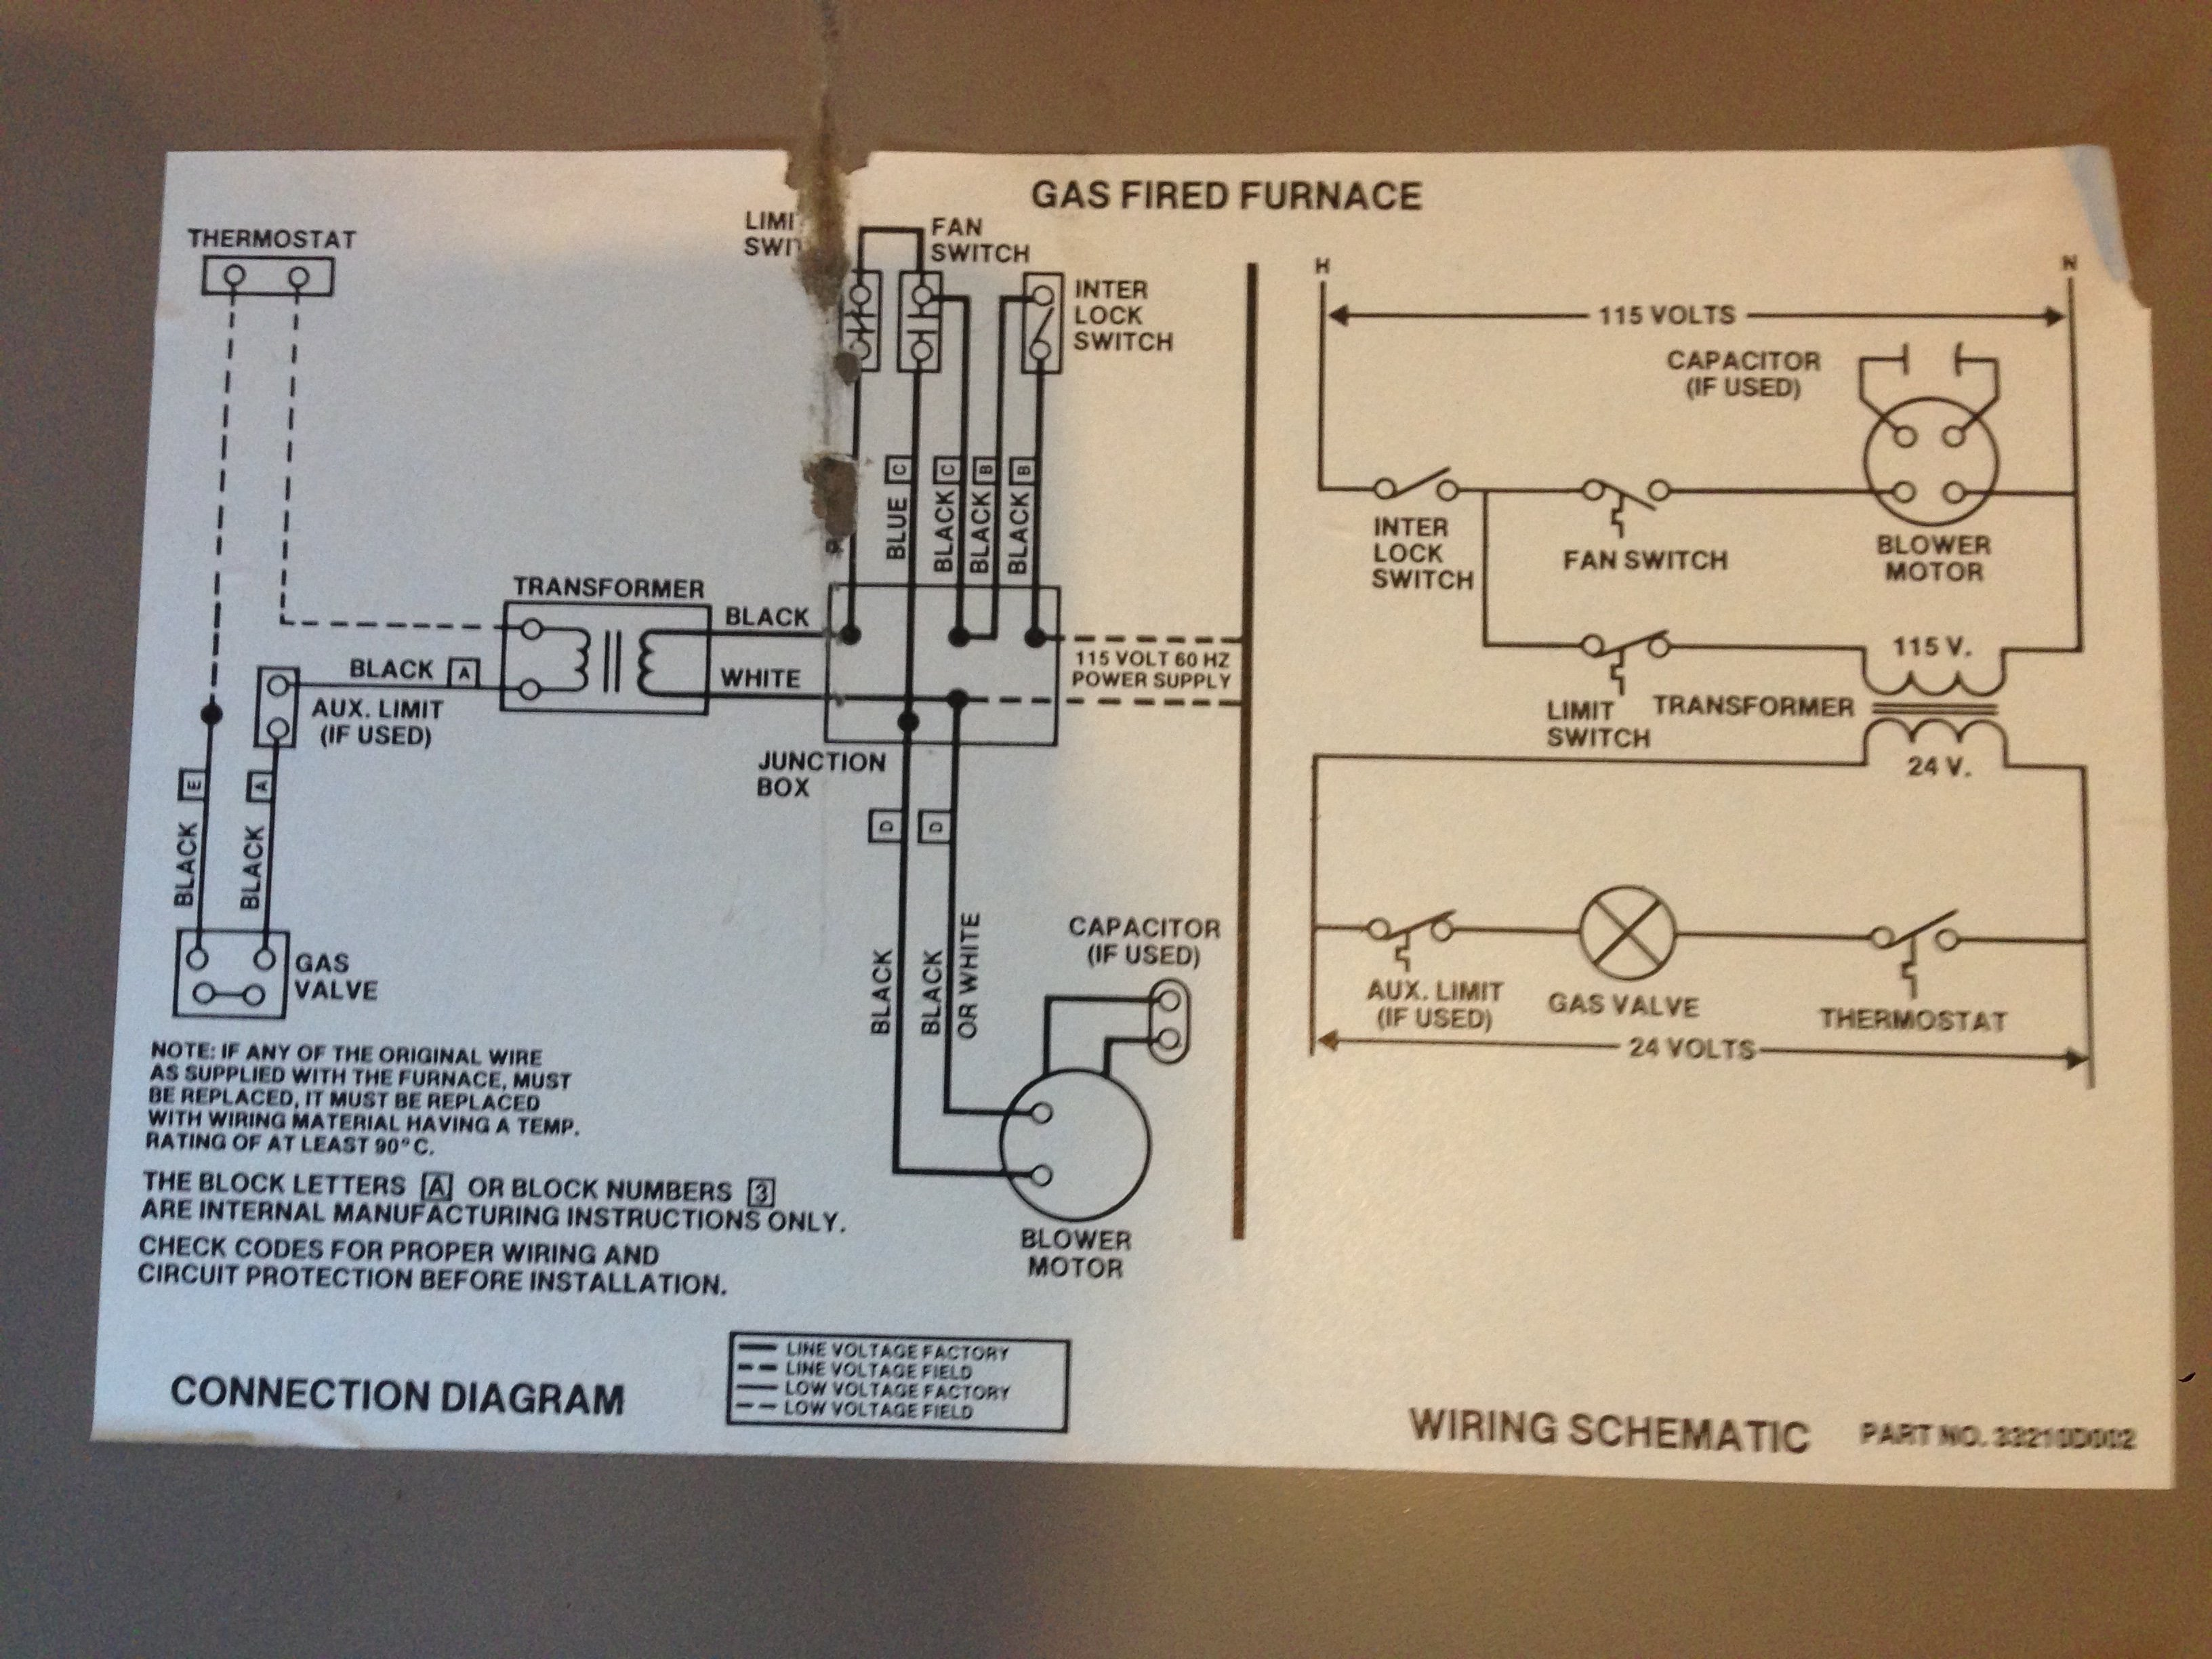 2014-12-16_022645_furnace_wiring_diagram  Gas Furnace Thermostat Wiring Diagram Wires on roll out switch, coleman evcon, typical central ac, for lennox, blower motor, 2 wire thermostat, gms80453anbd, mobile home intertherm, 120 for old, air temp,